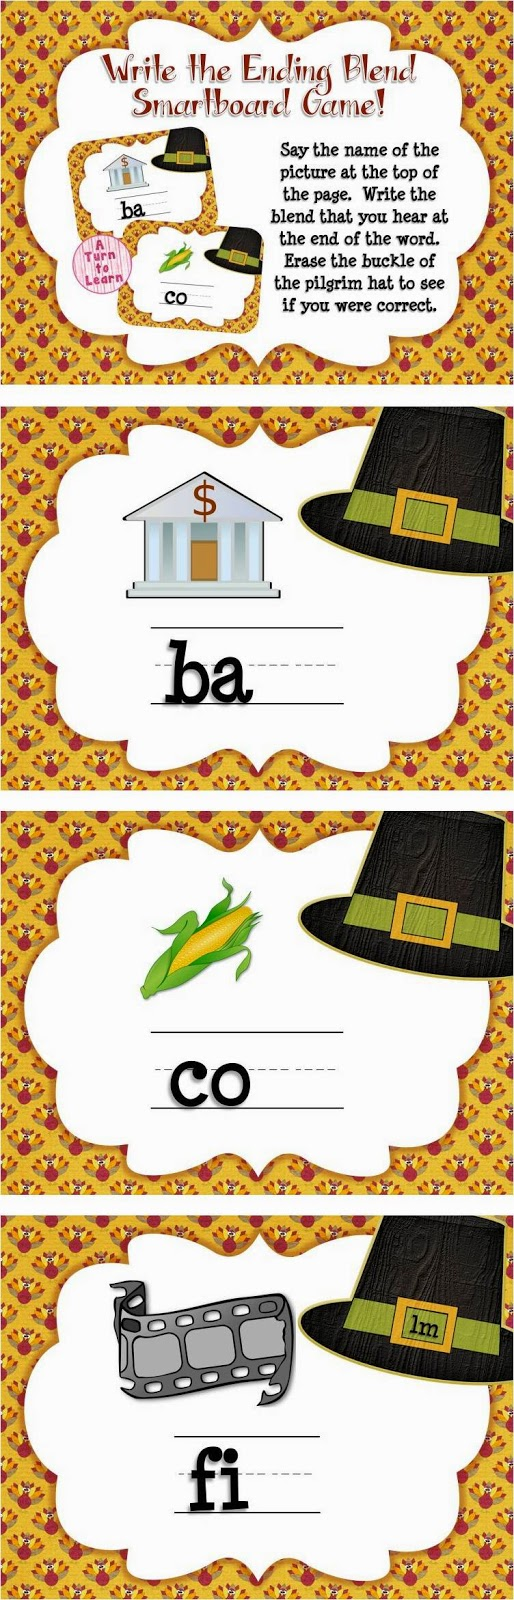 This Thanksgiving themed smartboard/promethean board game is the perfect way to celebrate the holiday! Write the blend you hear at the end of the word. Erase the pilgrim's hat to see if you were correct.